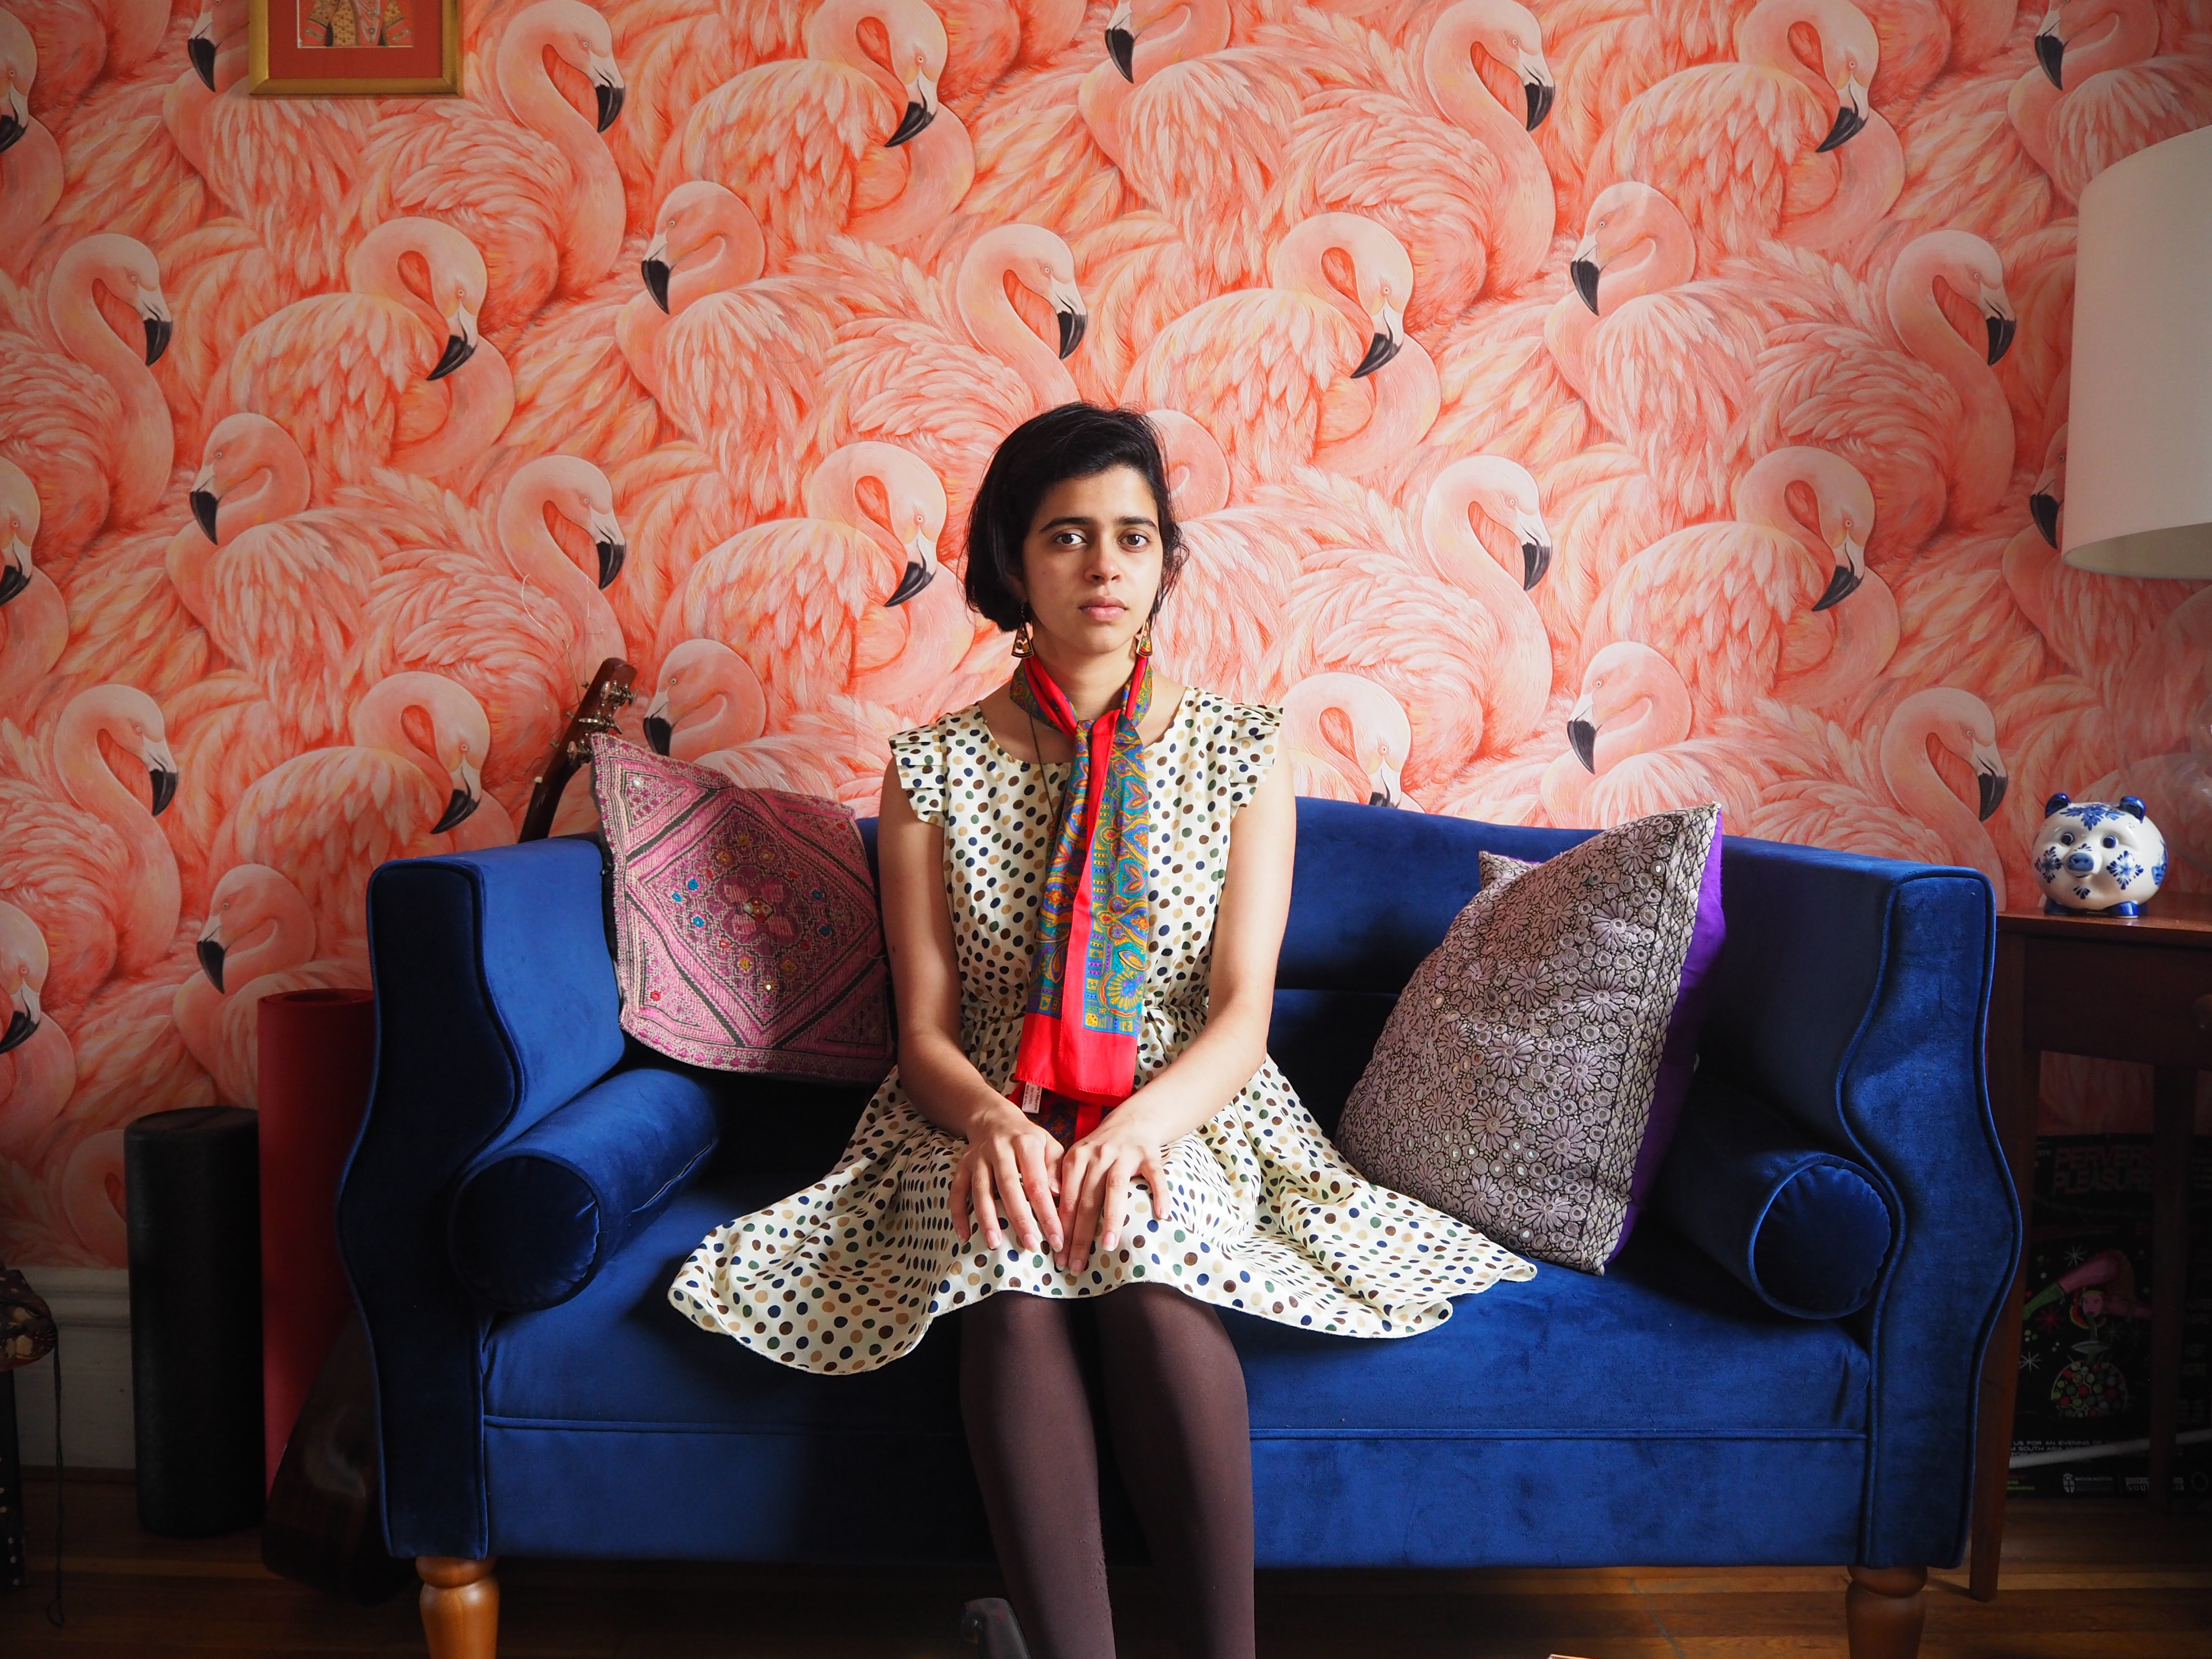 Photo of Aditi sitting on a velvet blue couch in a polka dot dress, with a flamingo wallpaper backdrop.